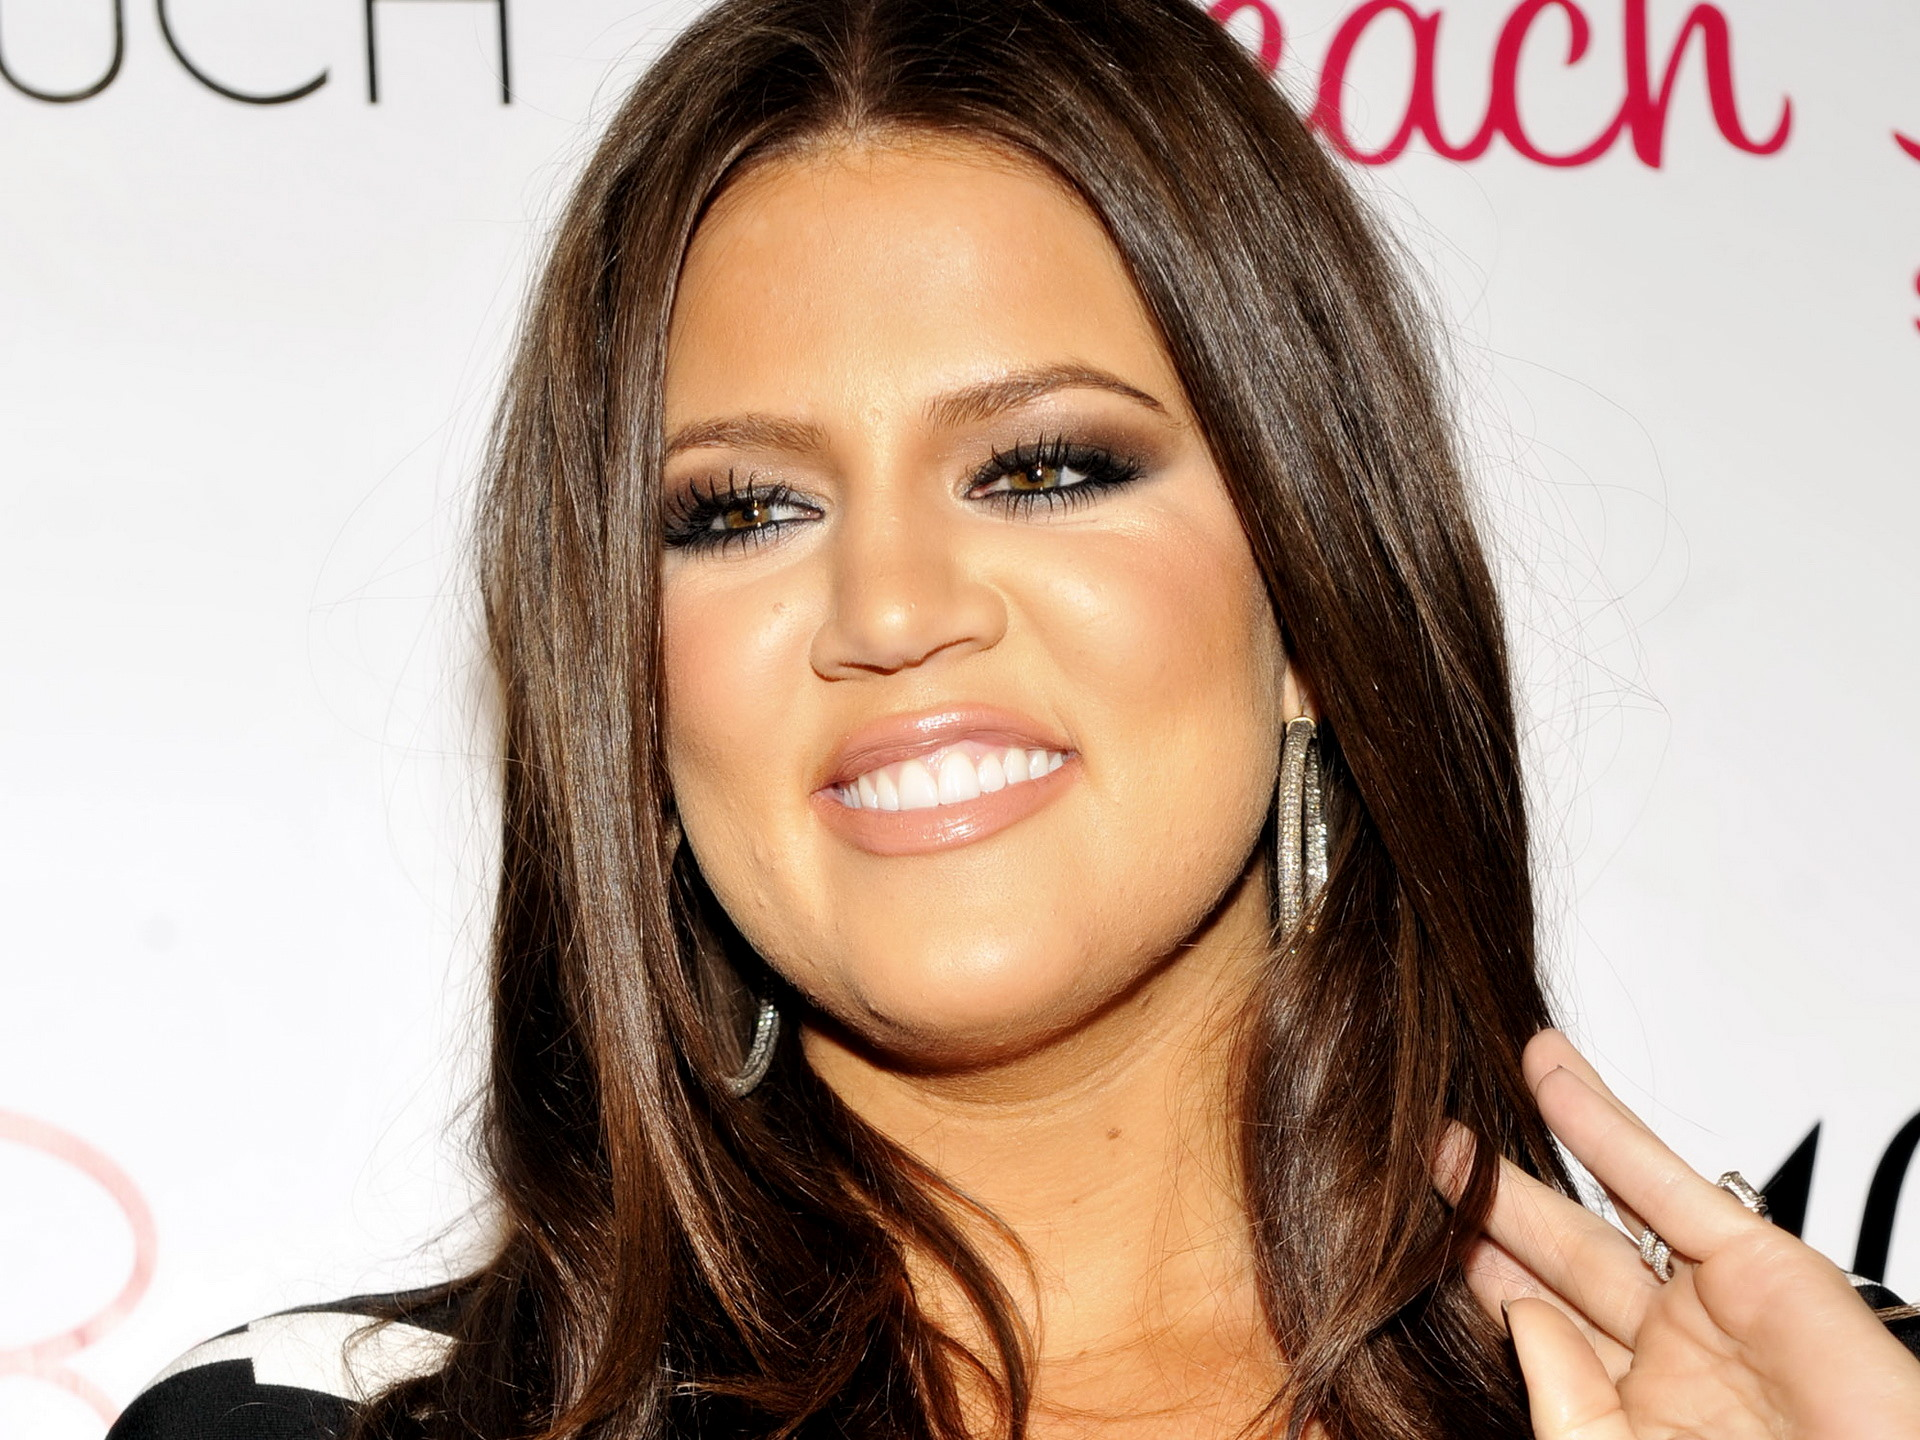 Khloe Kardashian Hd Desktop 10 HD Wallpapers